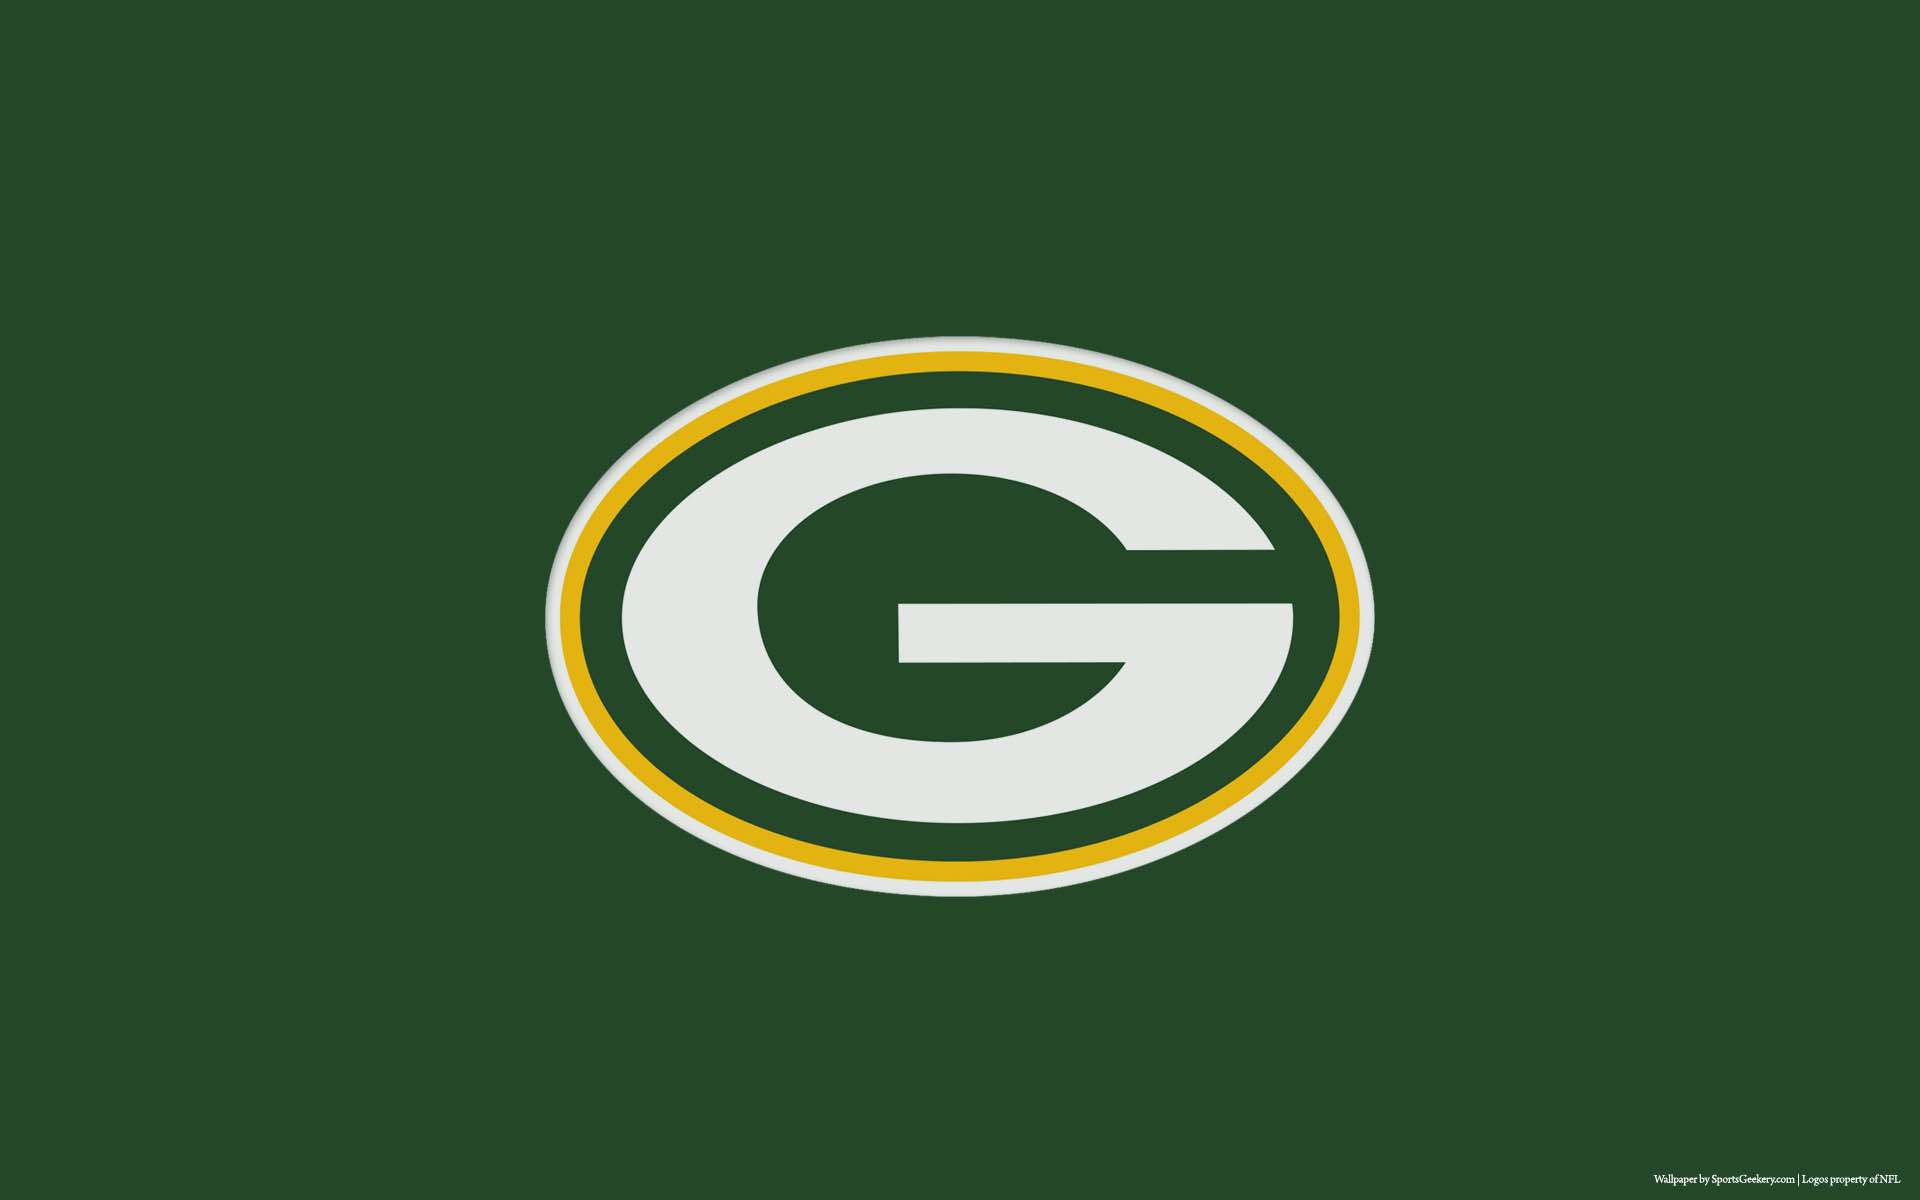 Green Bay Packers Wallpaper by KingFadez on